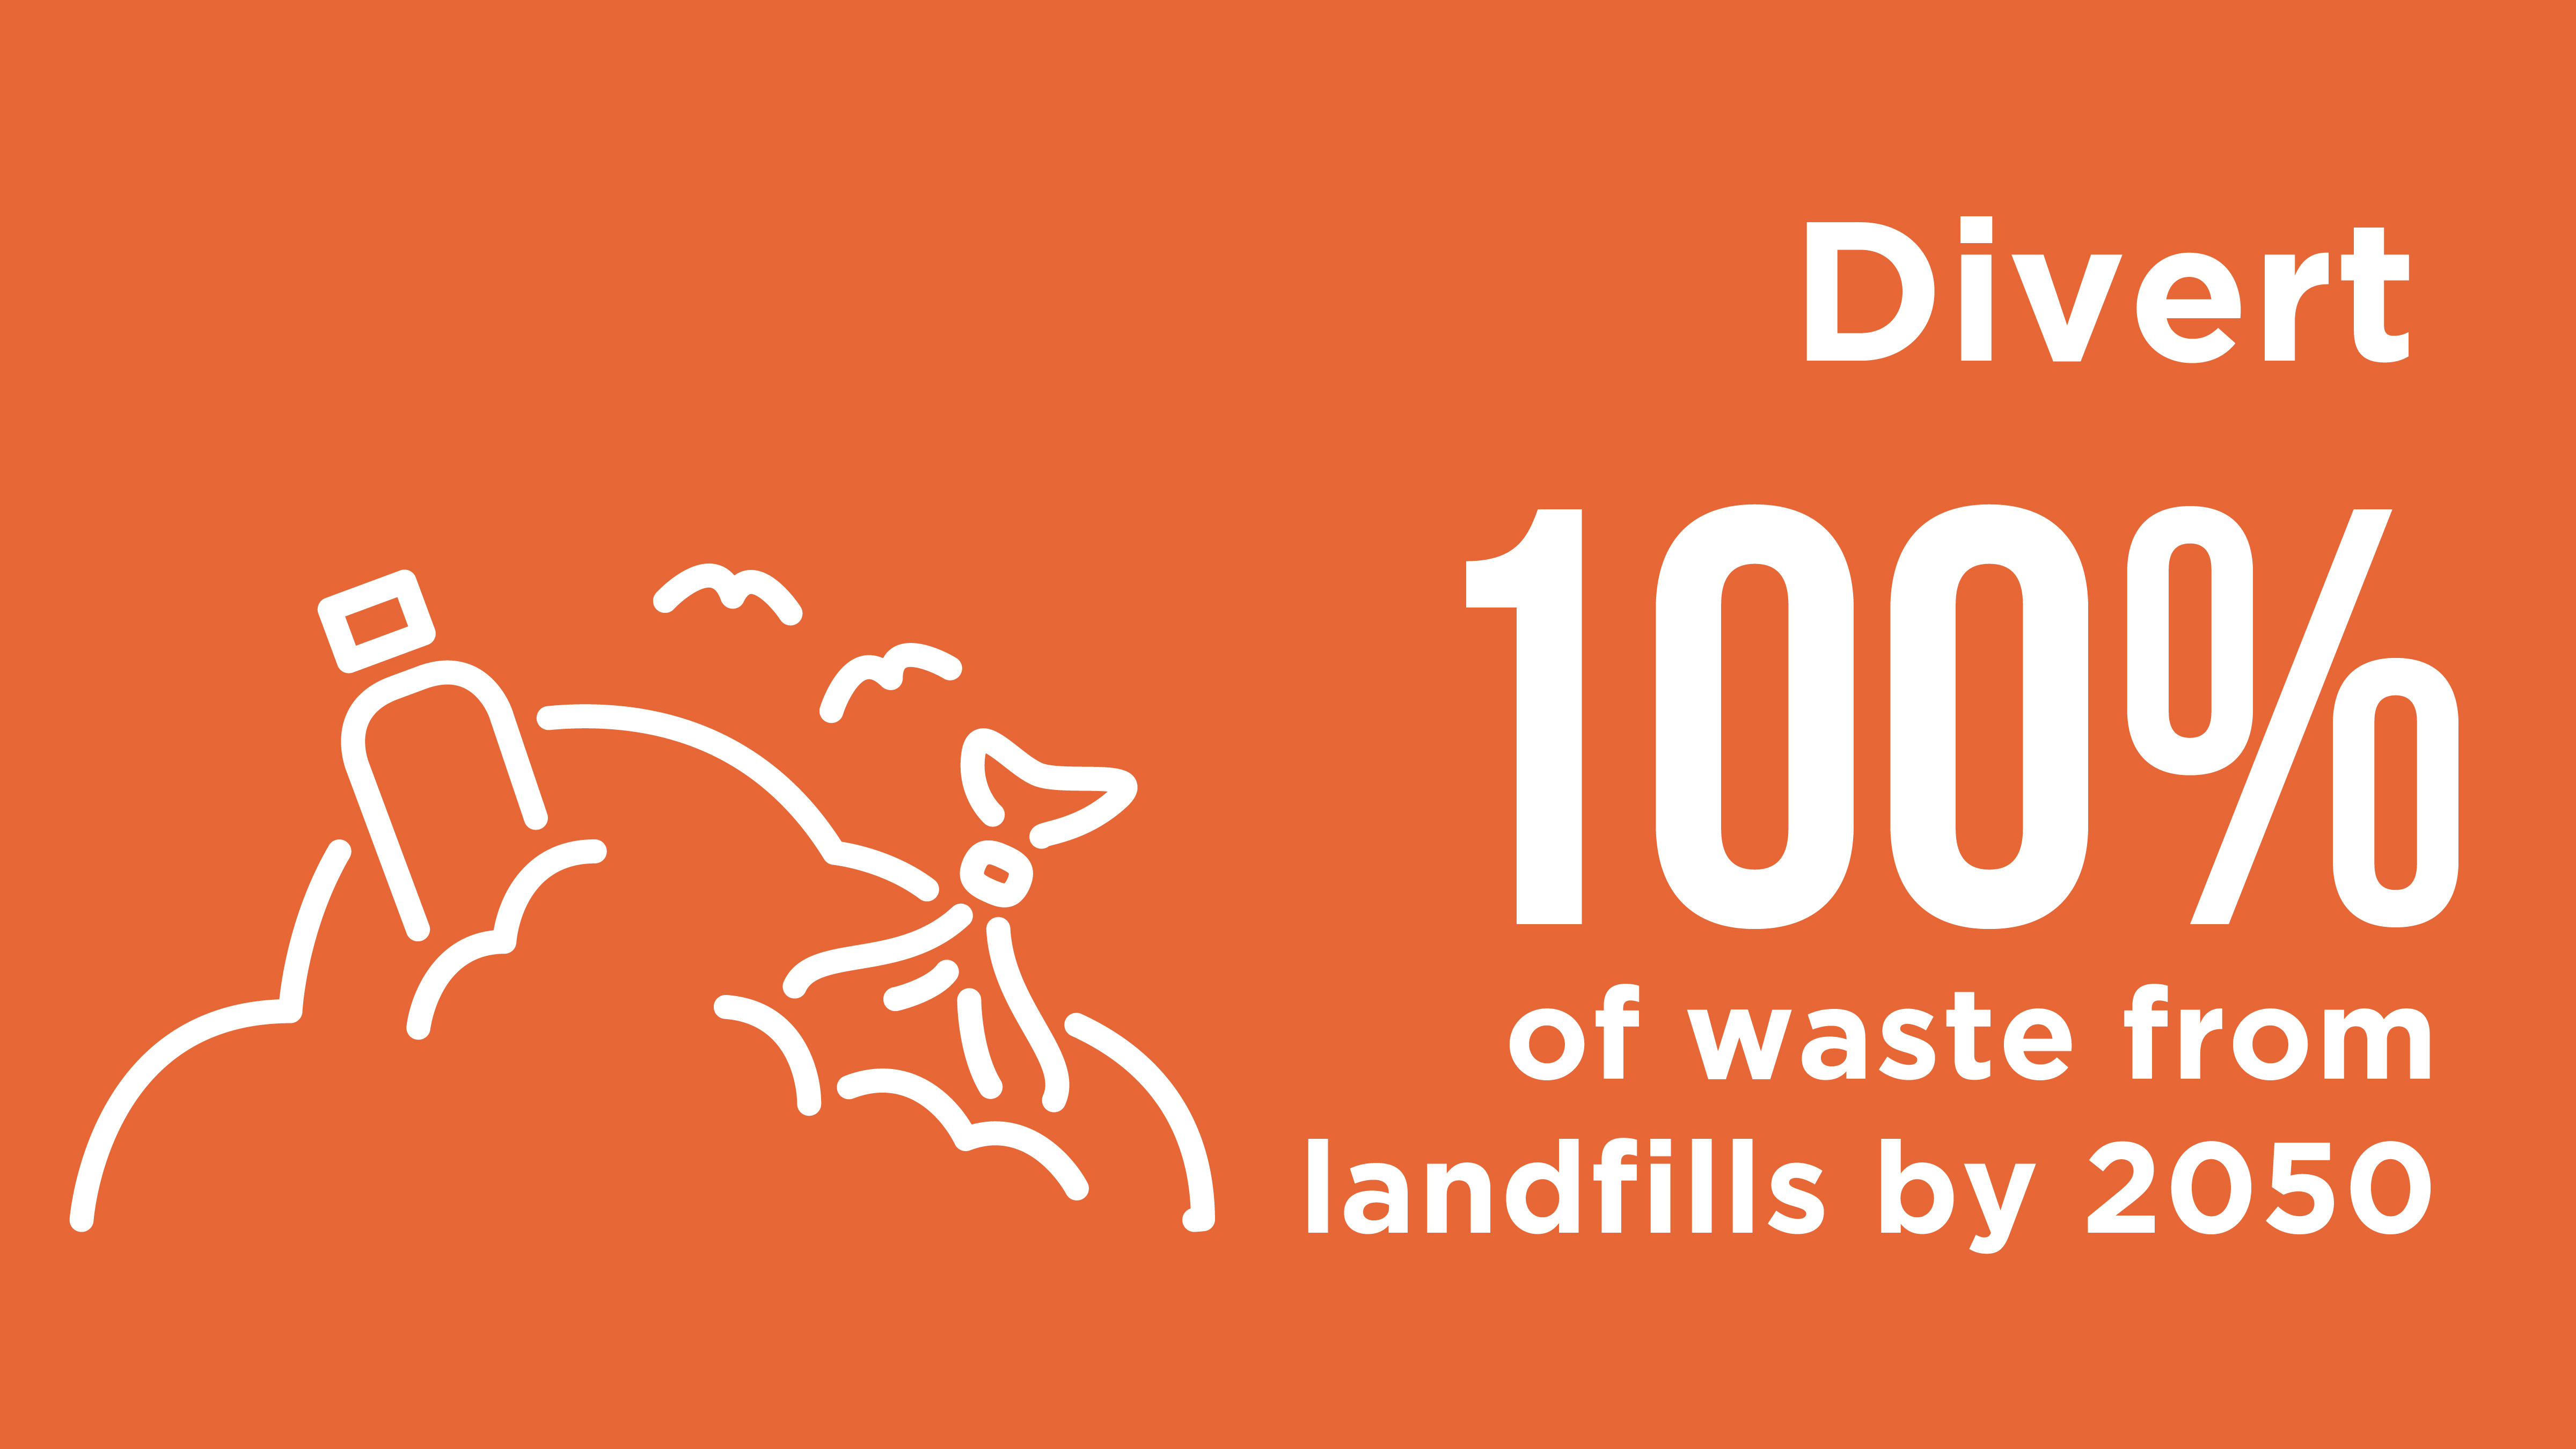 Divert 100% of waste from landfills by 2050